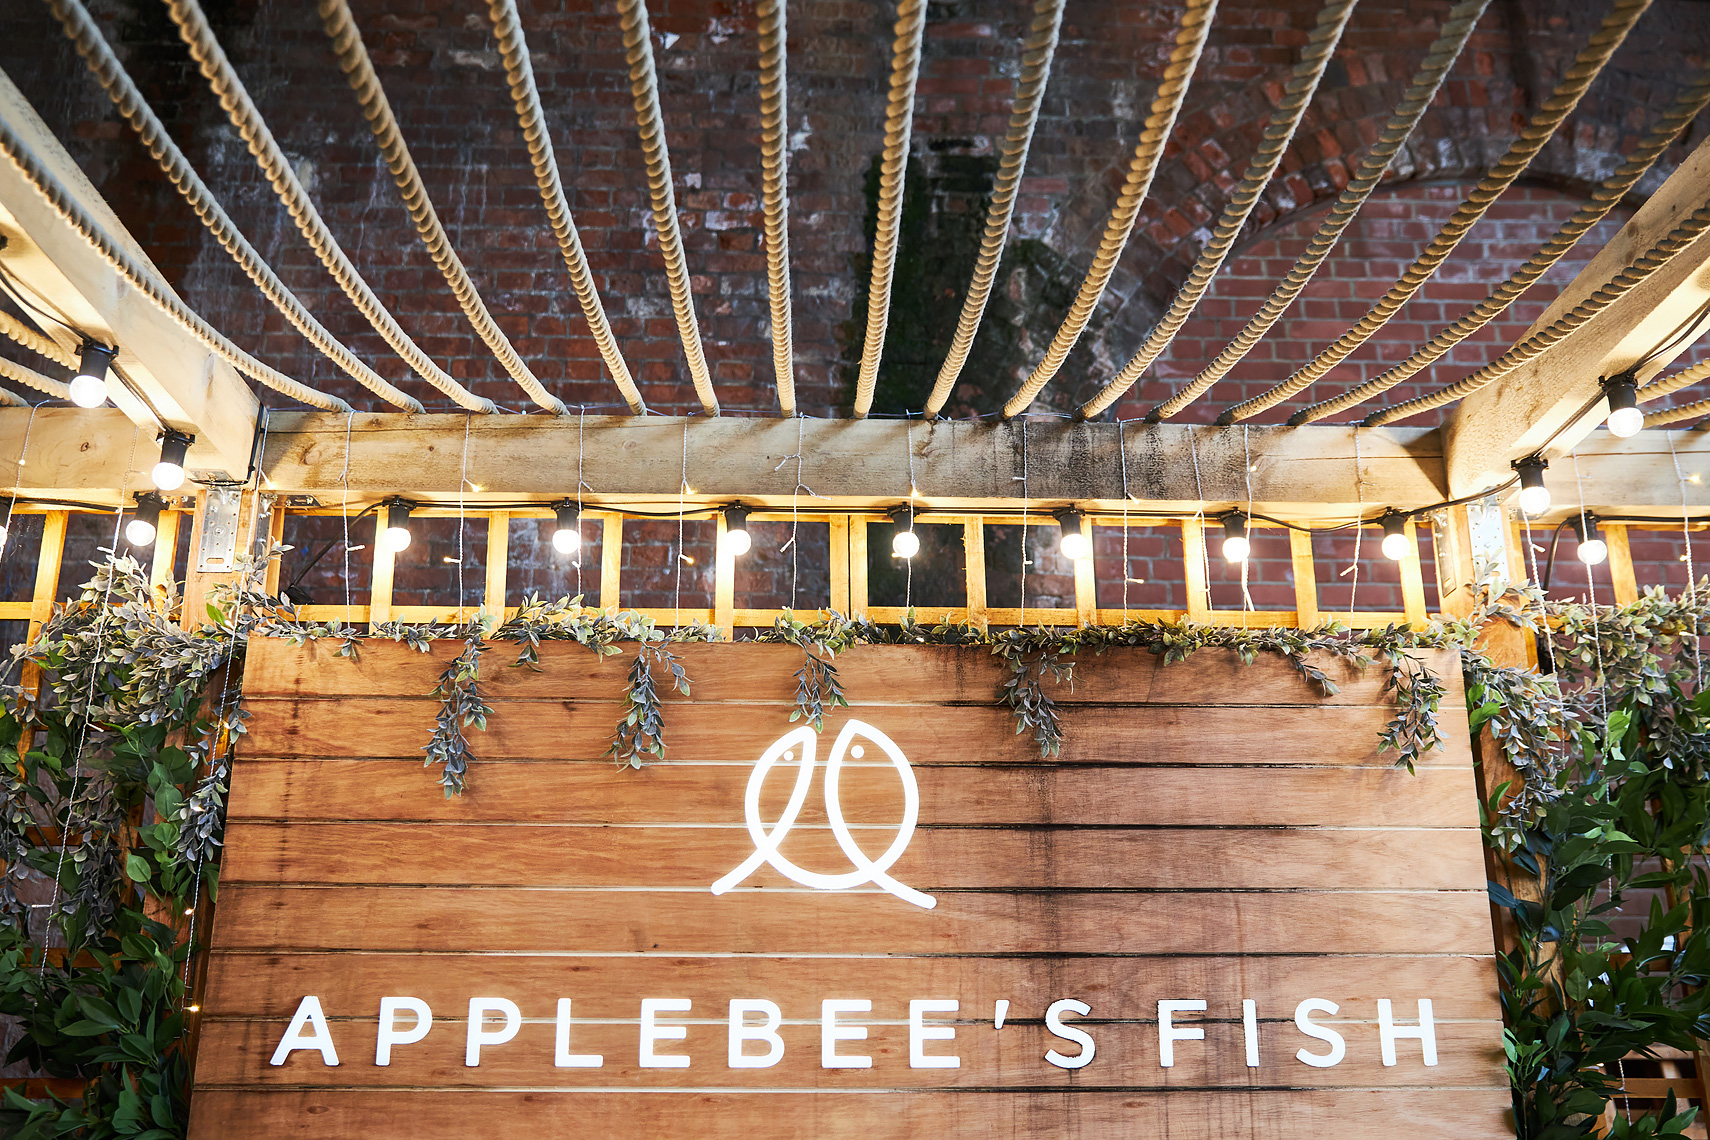 Applebees-Fish-Summer-Pop-Up_HR0001